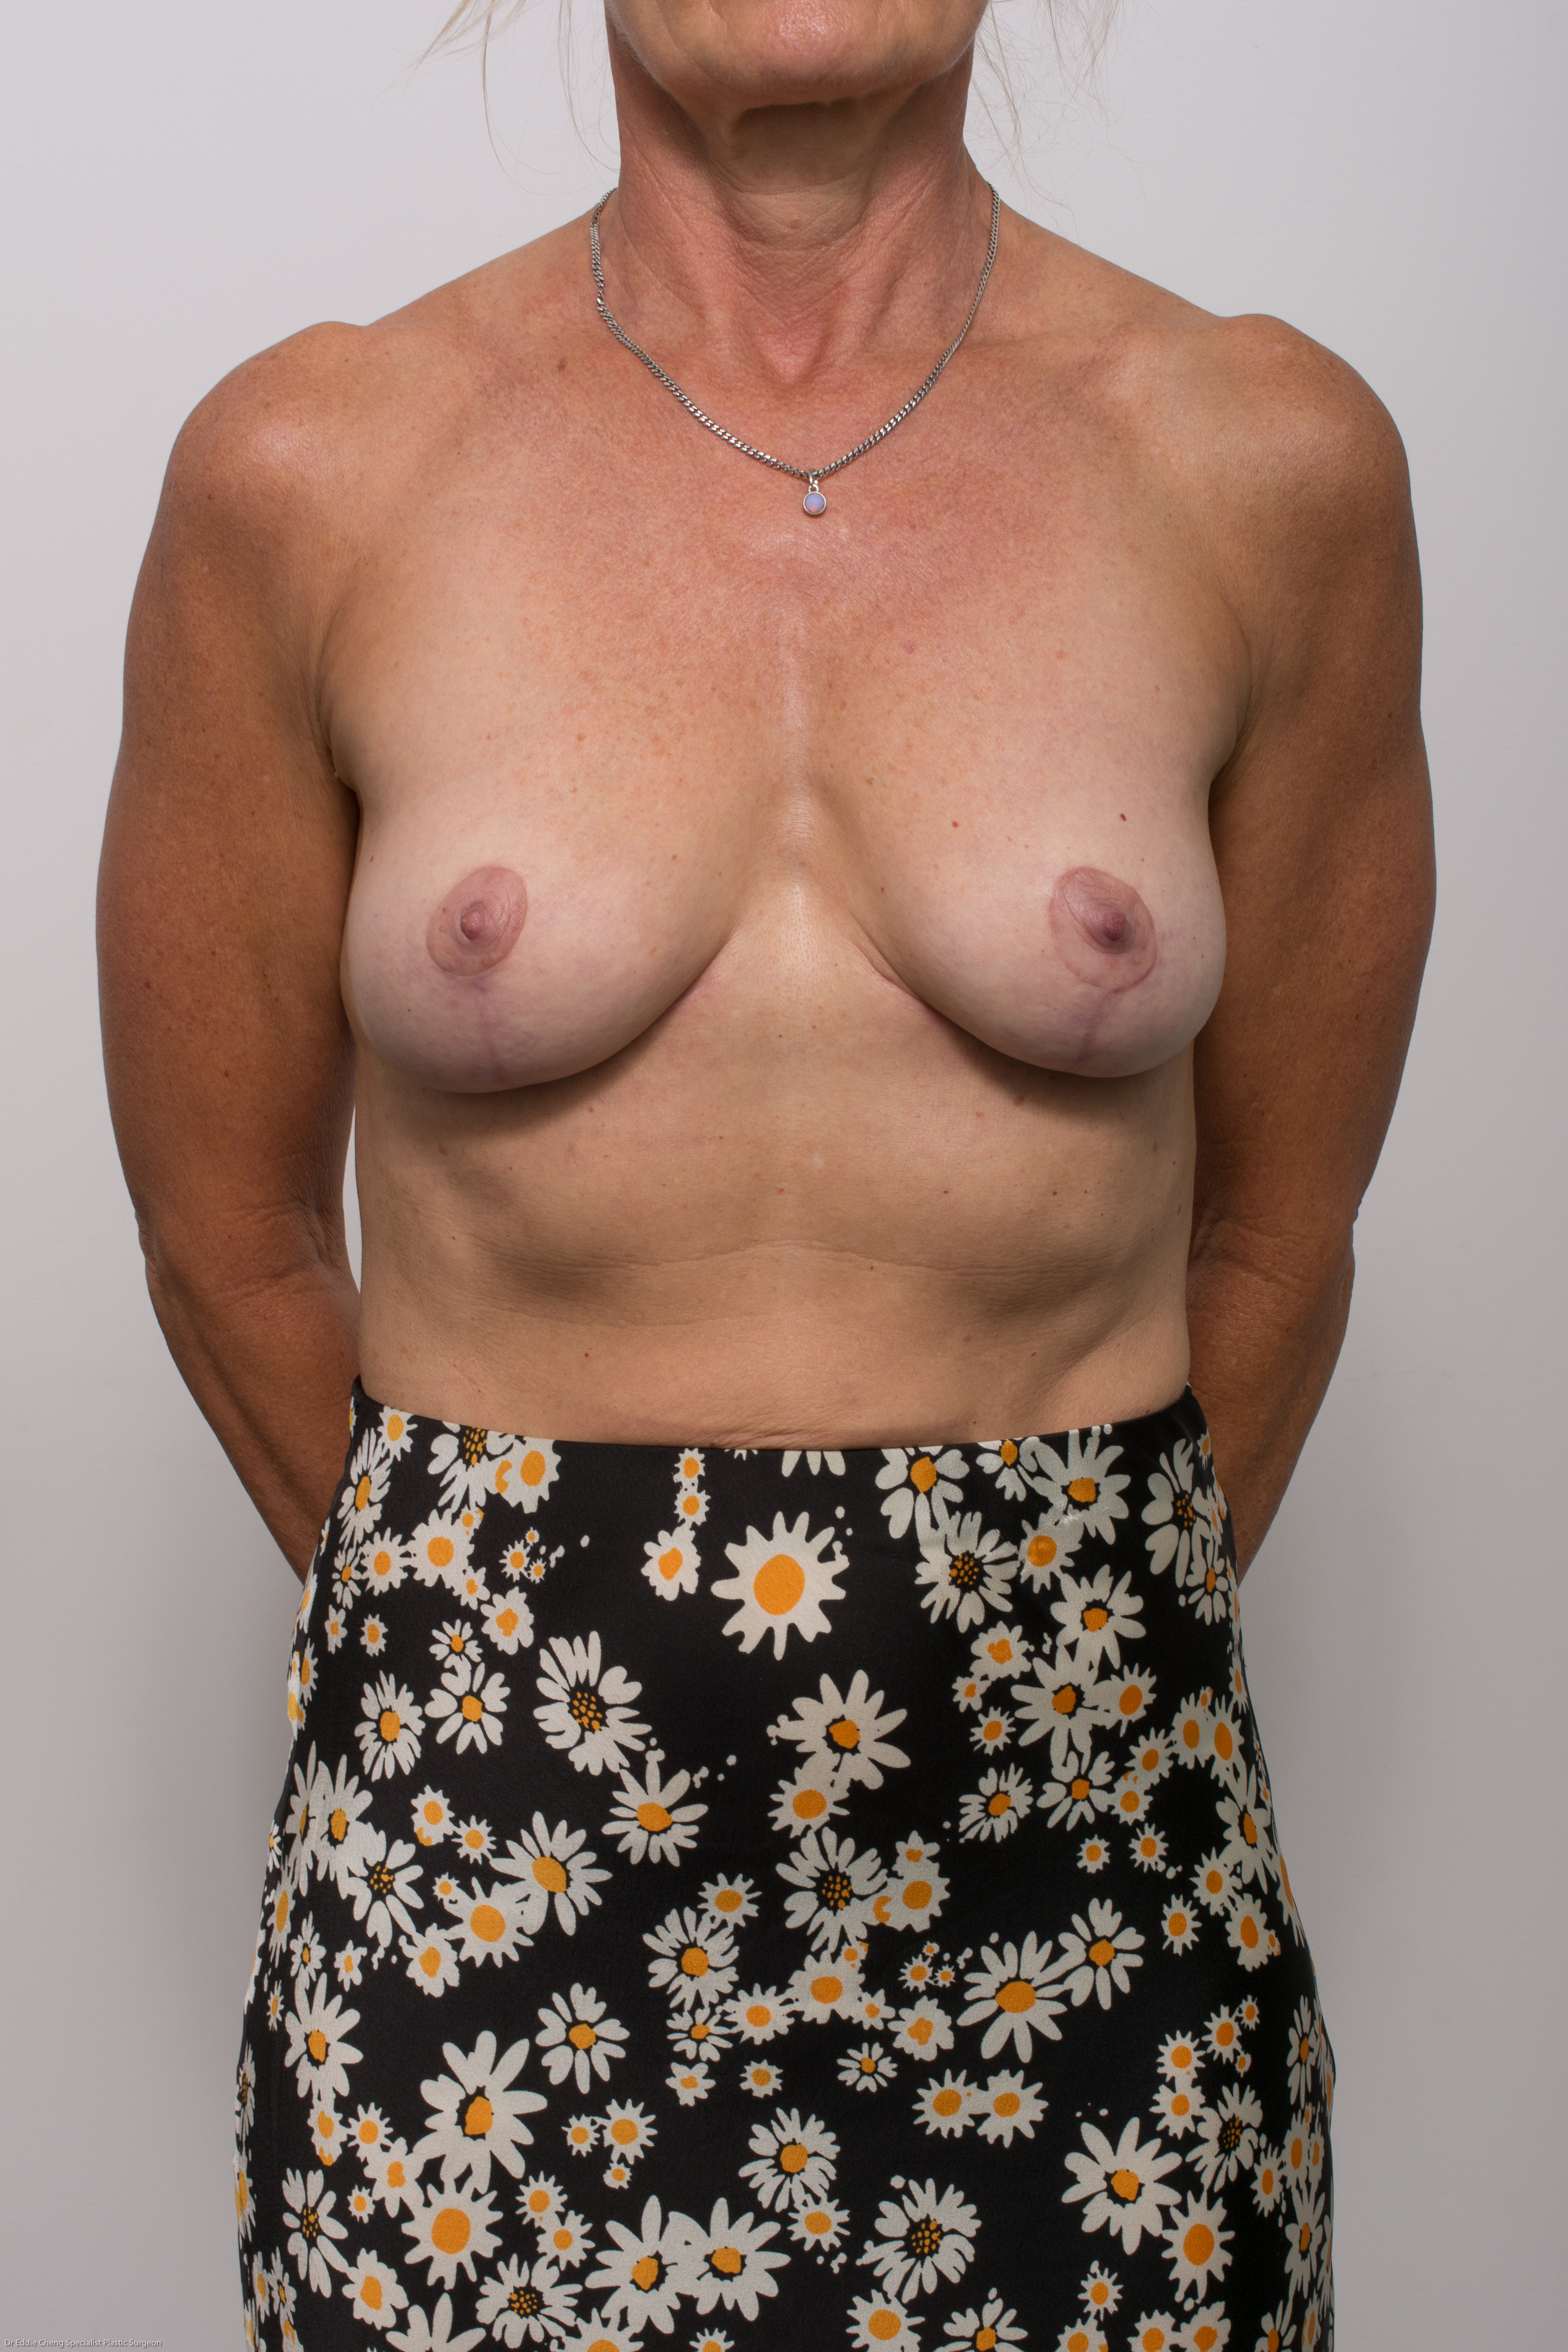 post op removal of breast implants and mastopexy (3 of 5)